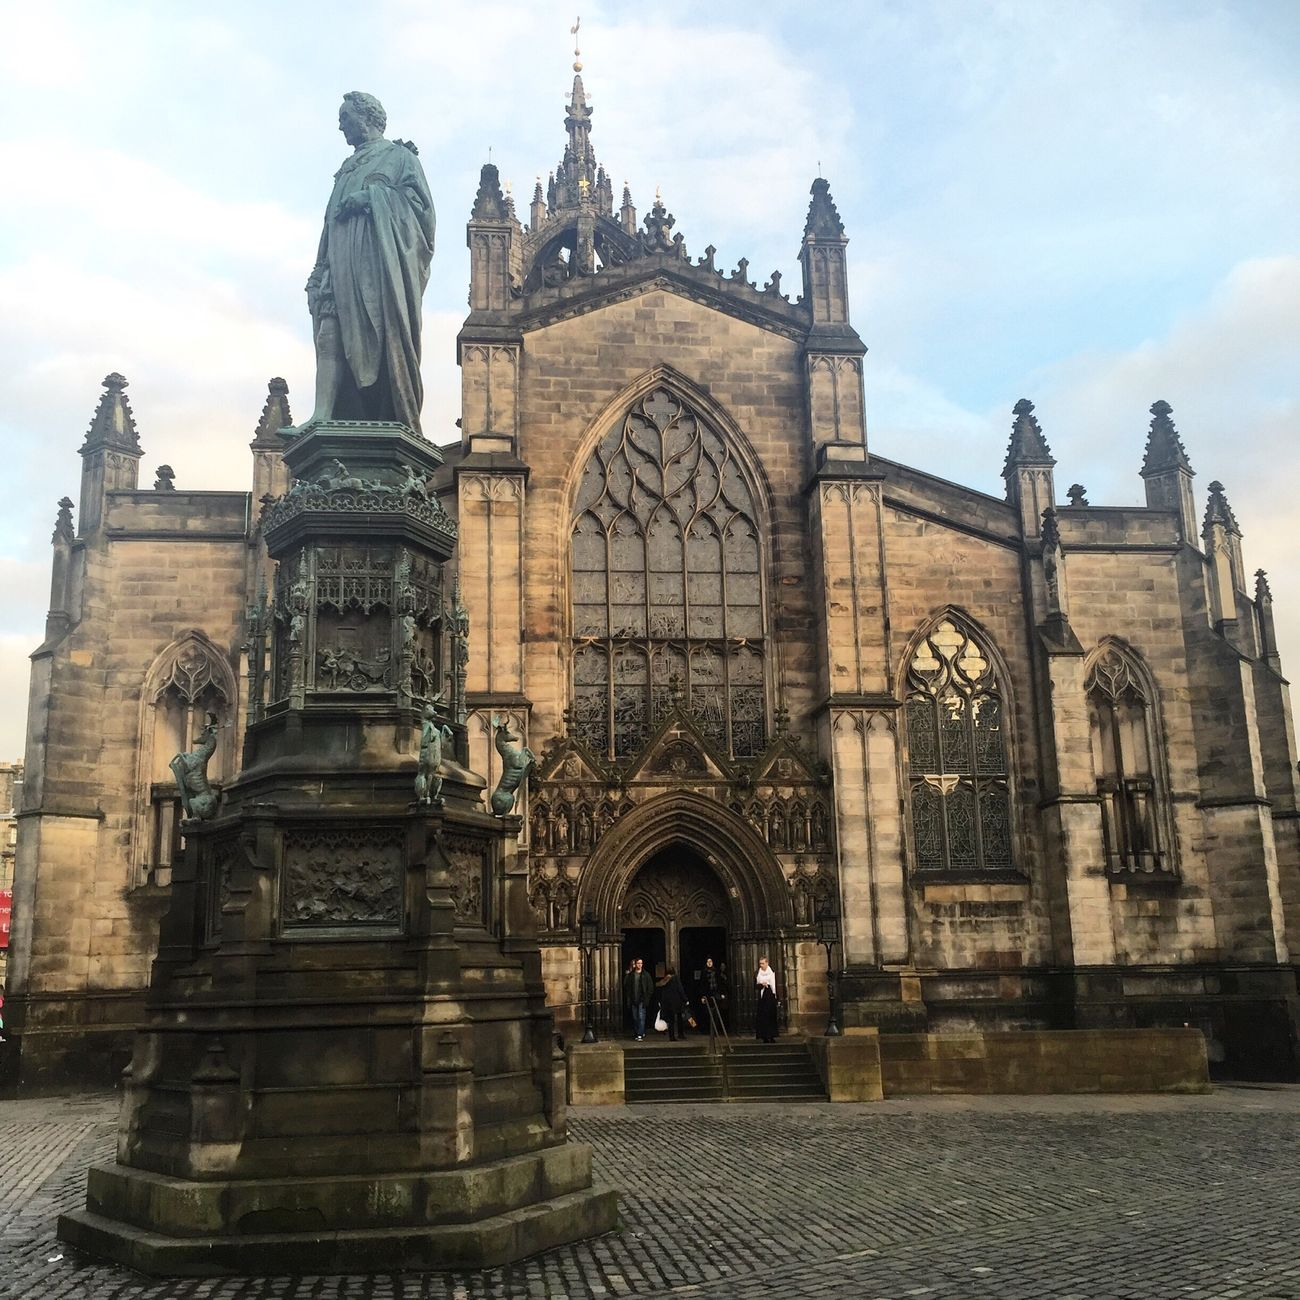 Edinburgh Sightseeing Scotland Edinburgh Catherdral Building 2daytrip Capital